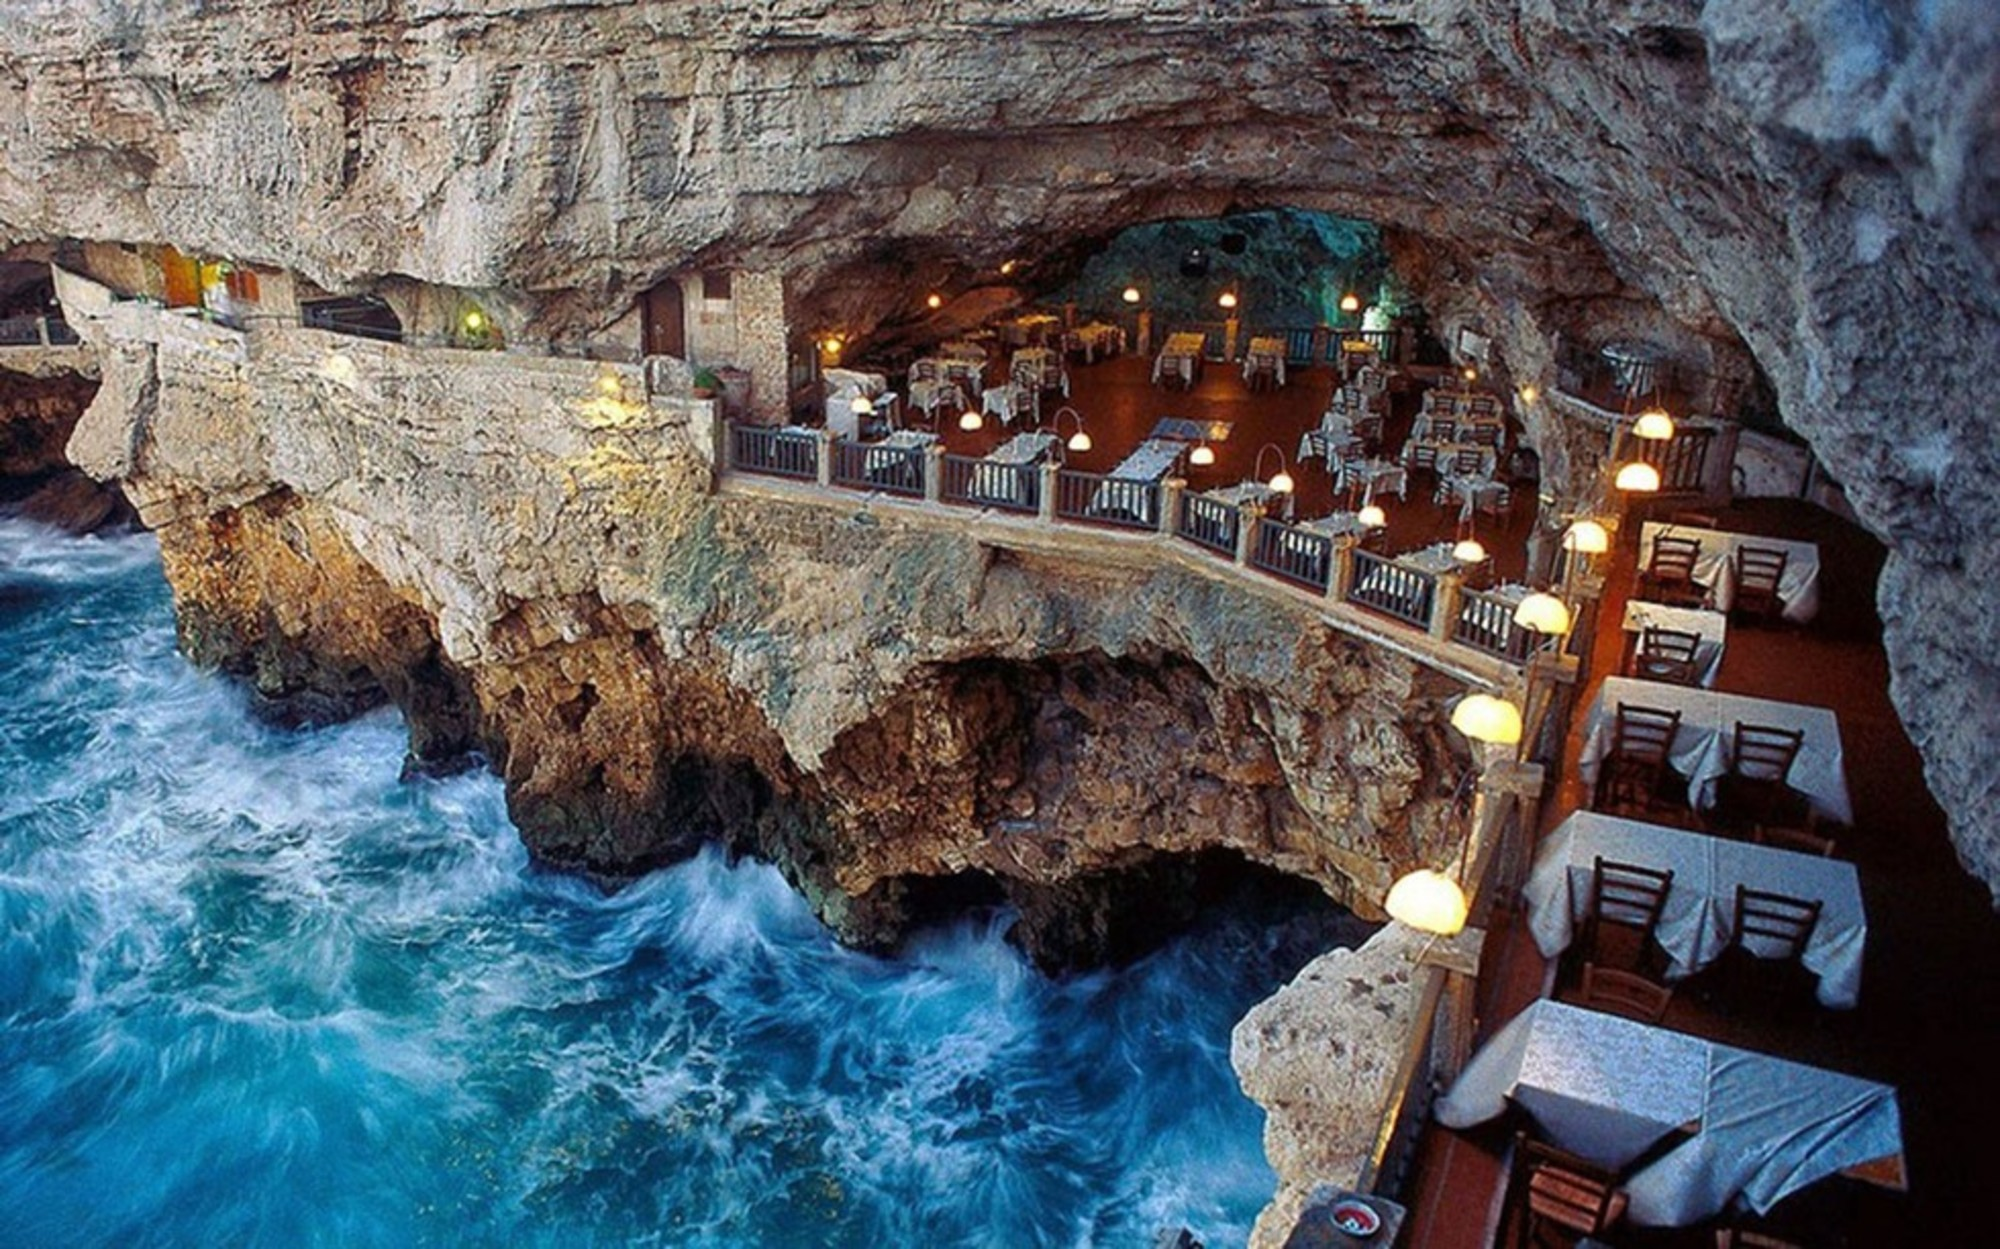 Luxury restaurants: an unforgettable experience inside a cave the most luxurious train rides in the world The Most Luxurious Train Rides In The World Luxury restaurants an unforgettable experience inside a cave the most luxurious train rides in the world The Most Luxurious Train Rides In The World Luxury restaurants an unforgettable experience inside a cave